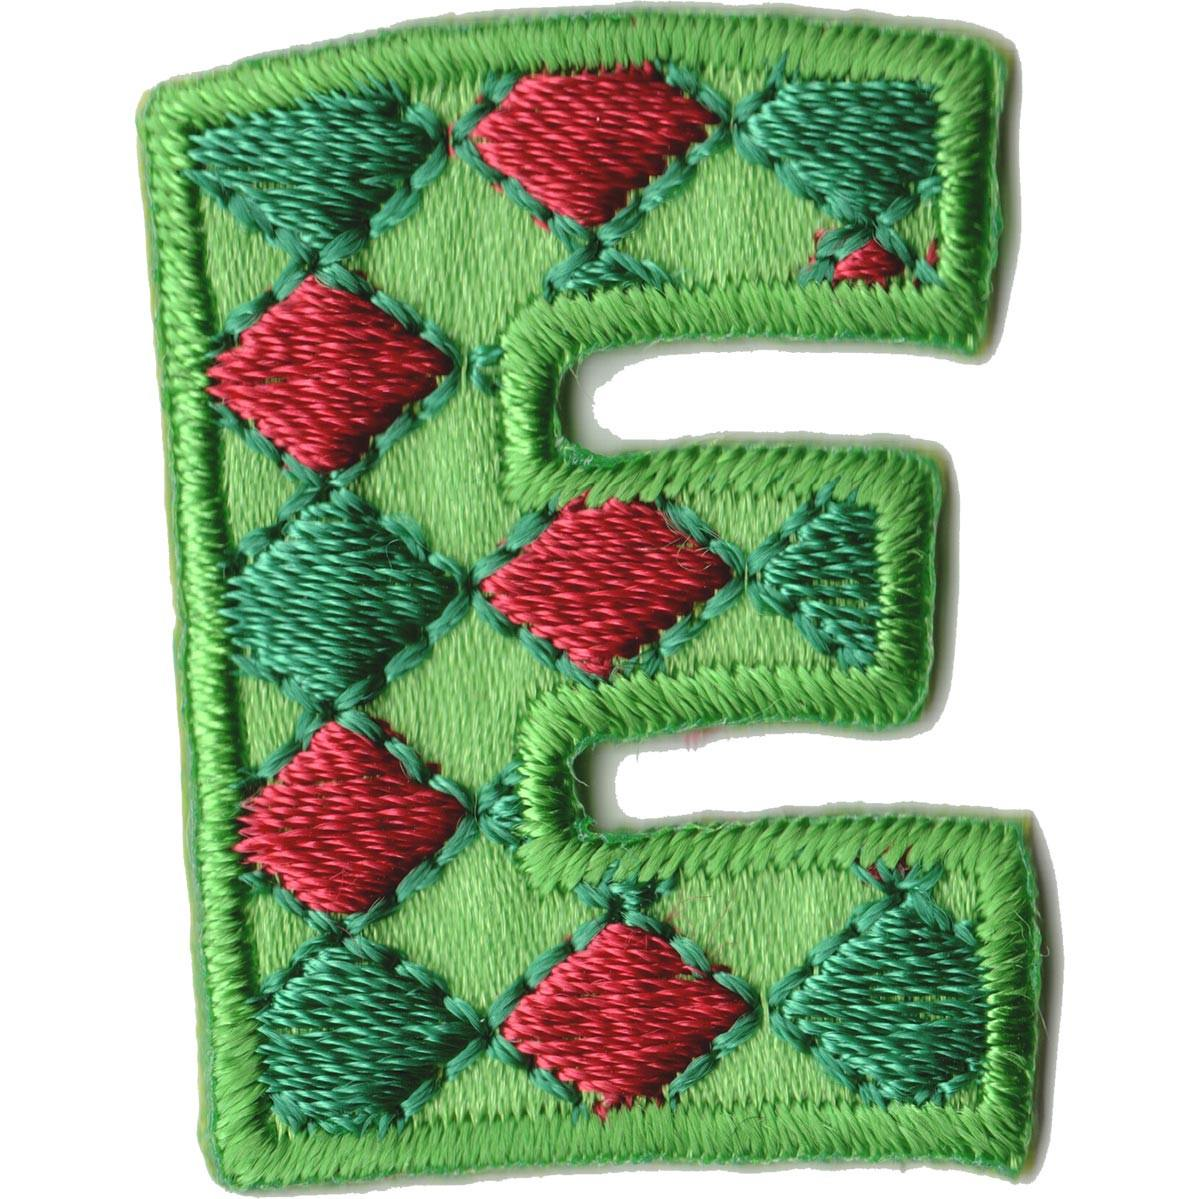 Embroidered - Alphabet Letter E